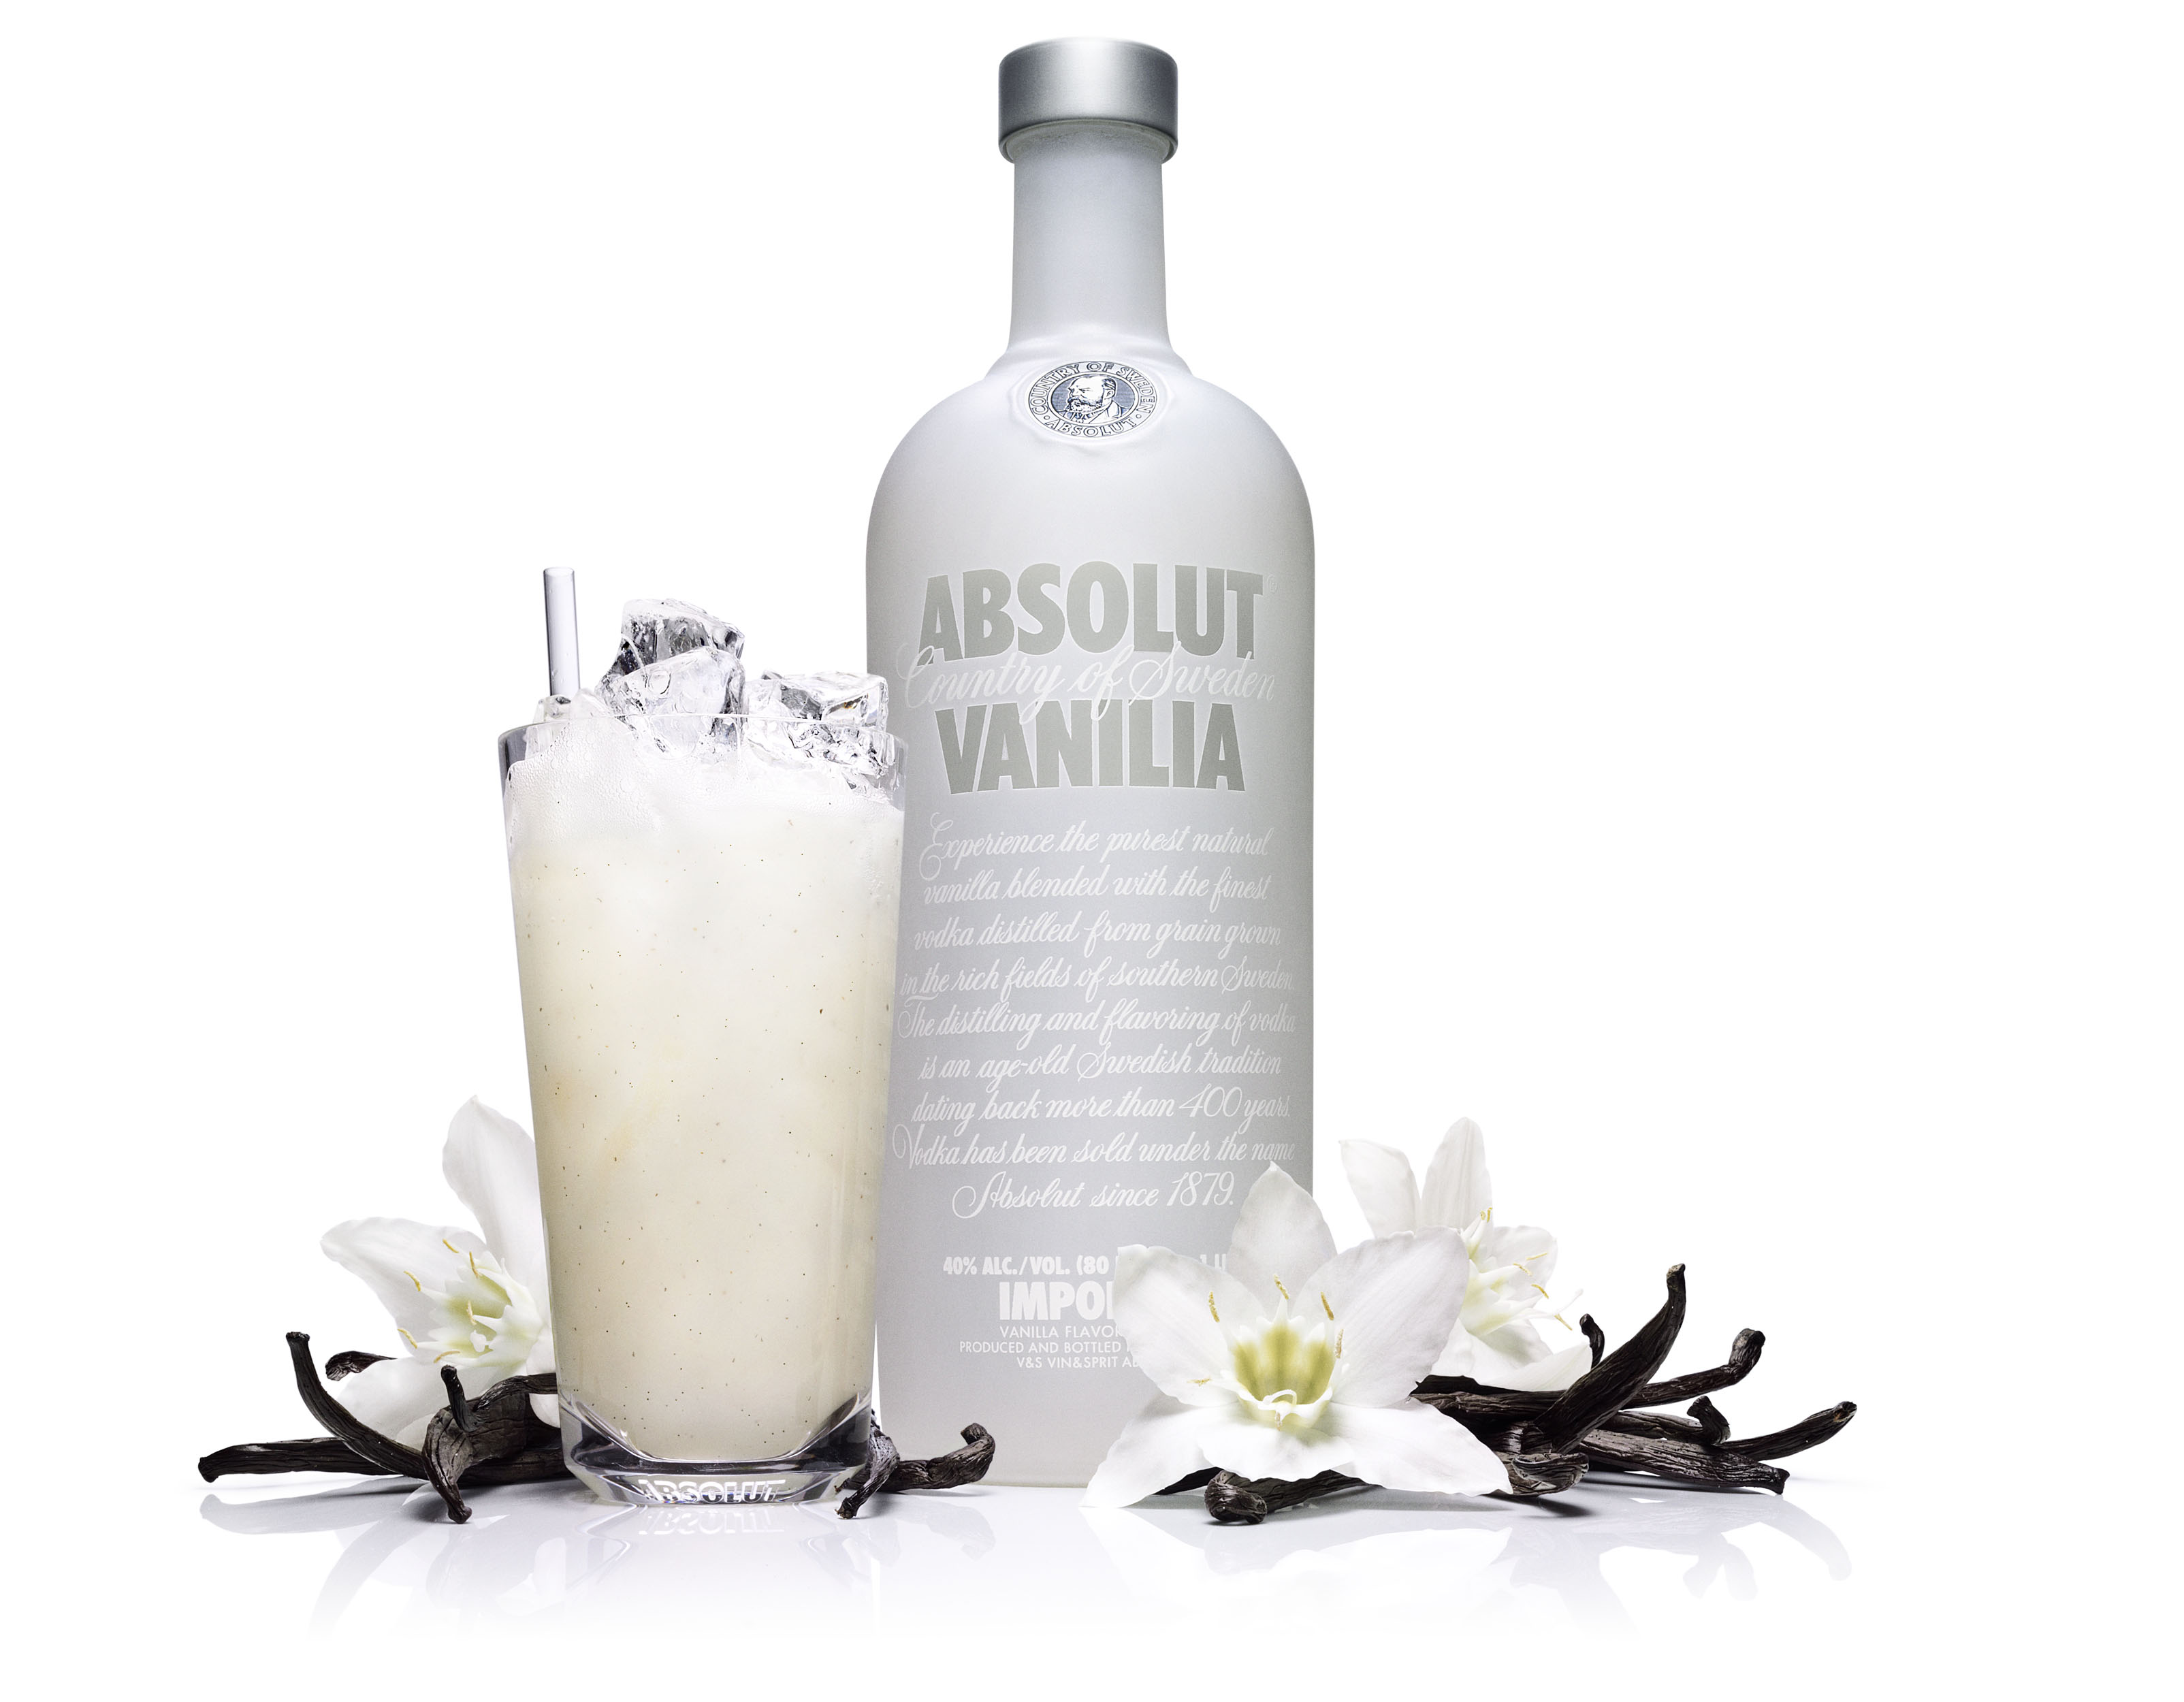 jensmortensen-absolut-vodka-cdaefb4c